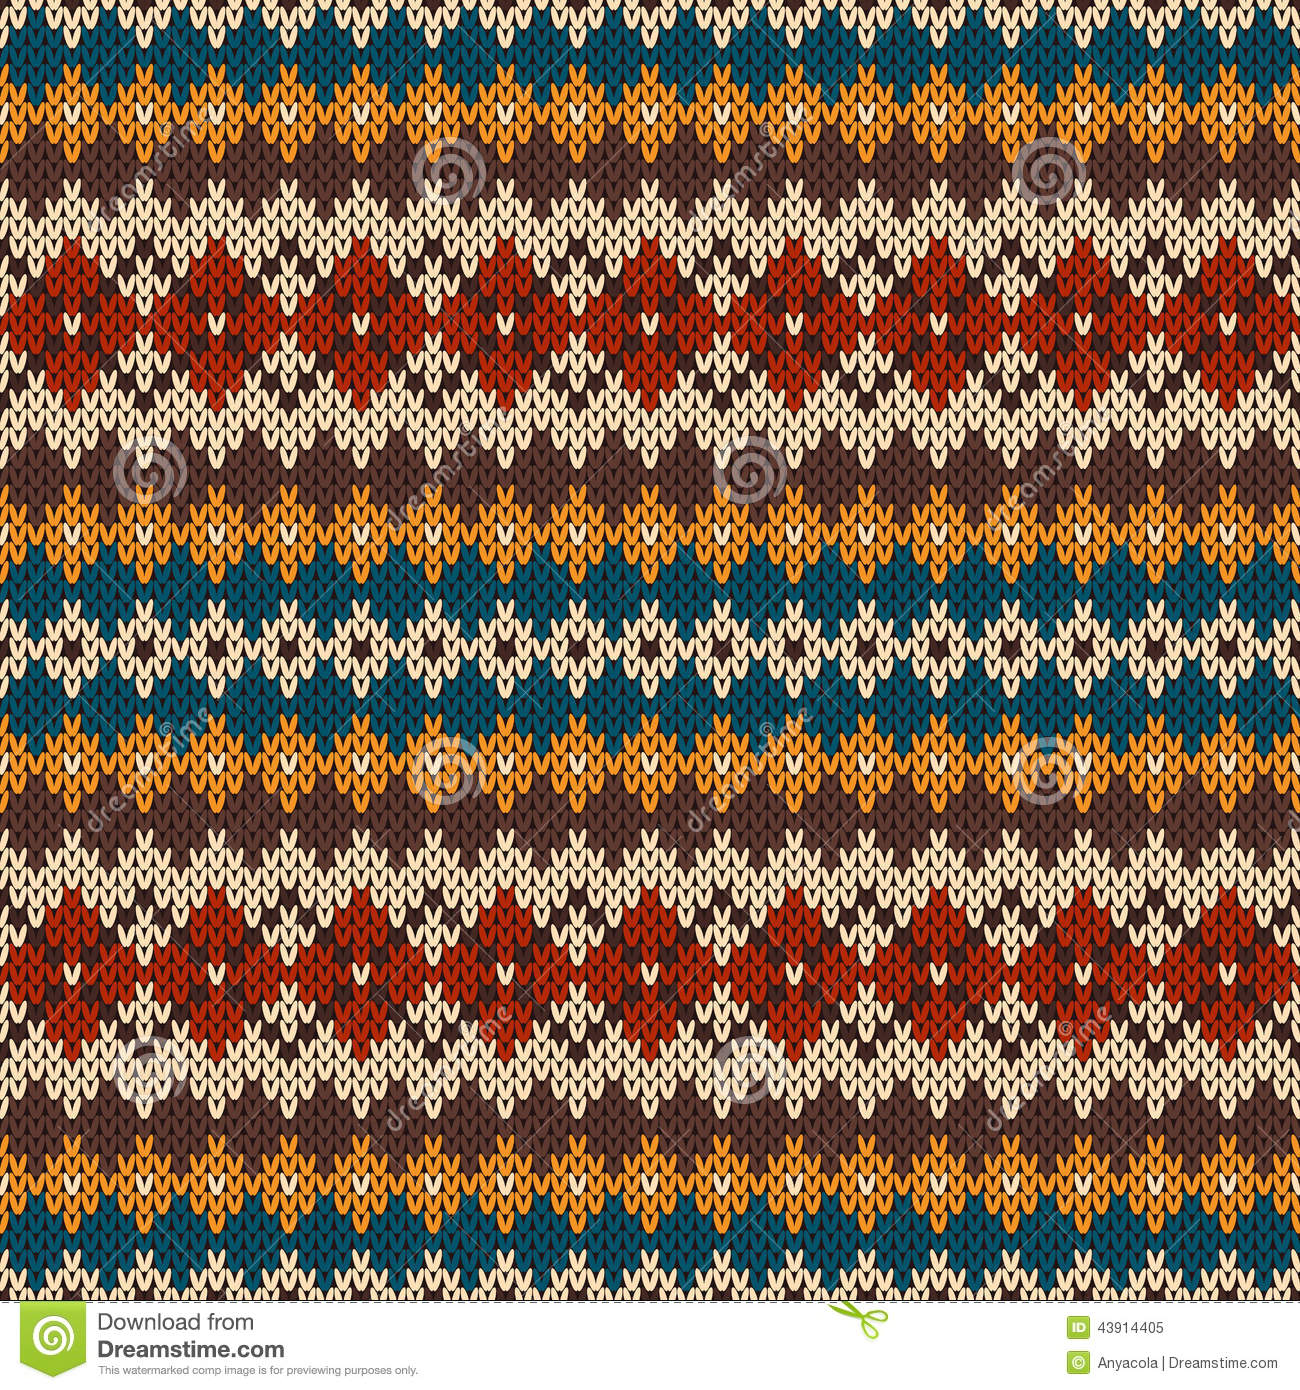 Knitted Seamless Pattern In Fair Isle Style EPS Available